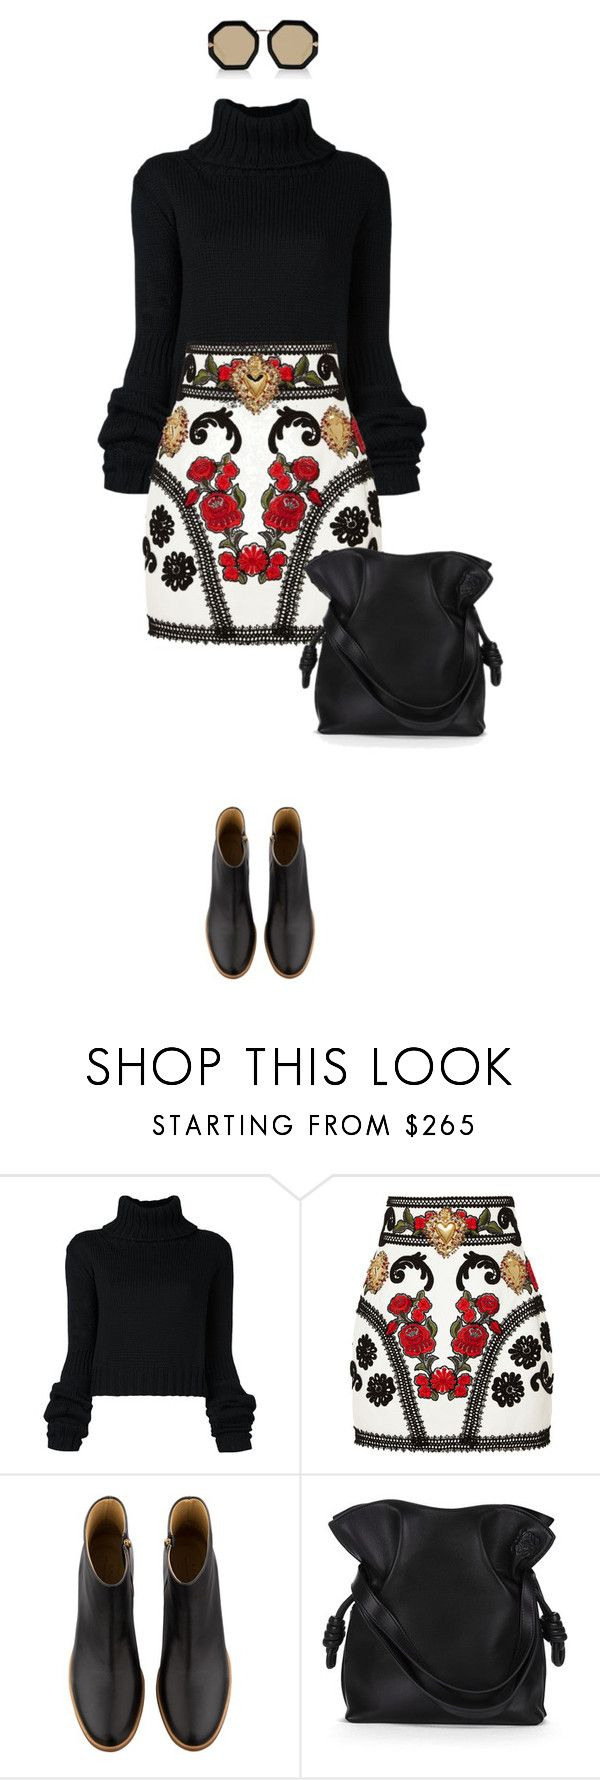 """""""L_L05"""" by evava-c ❤ liked on Polyvore featuring IO Ivana Omazić, Dolce&Gabbana, A.P.C., Loewe and Karen Walker"""